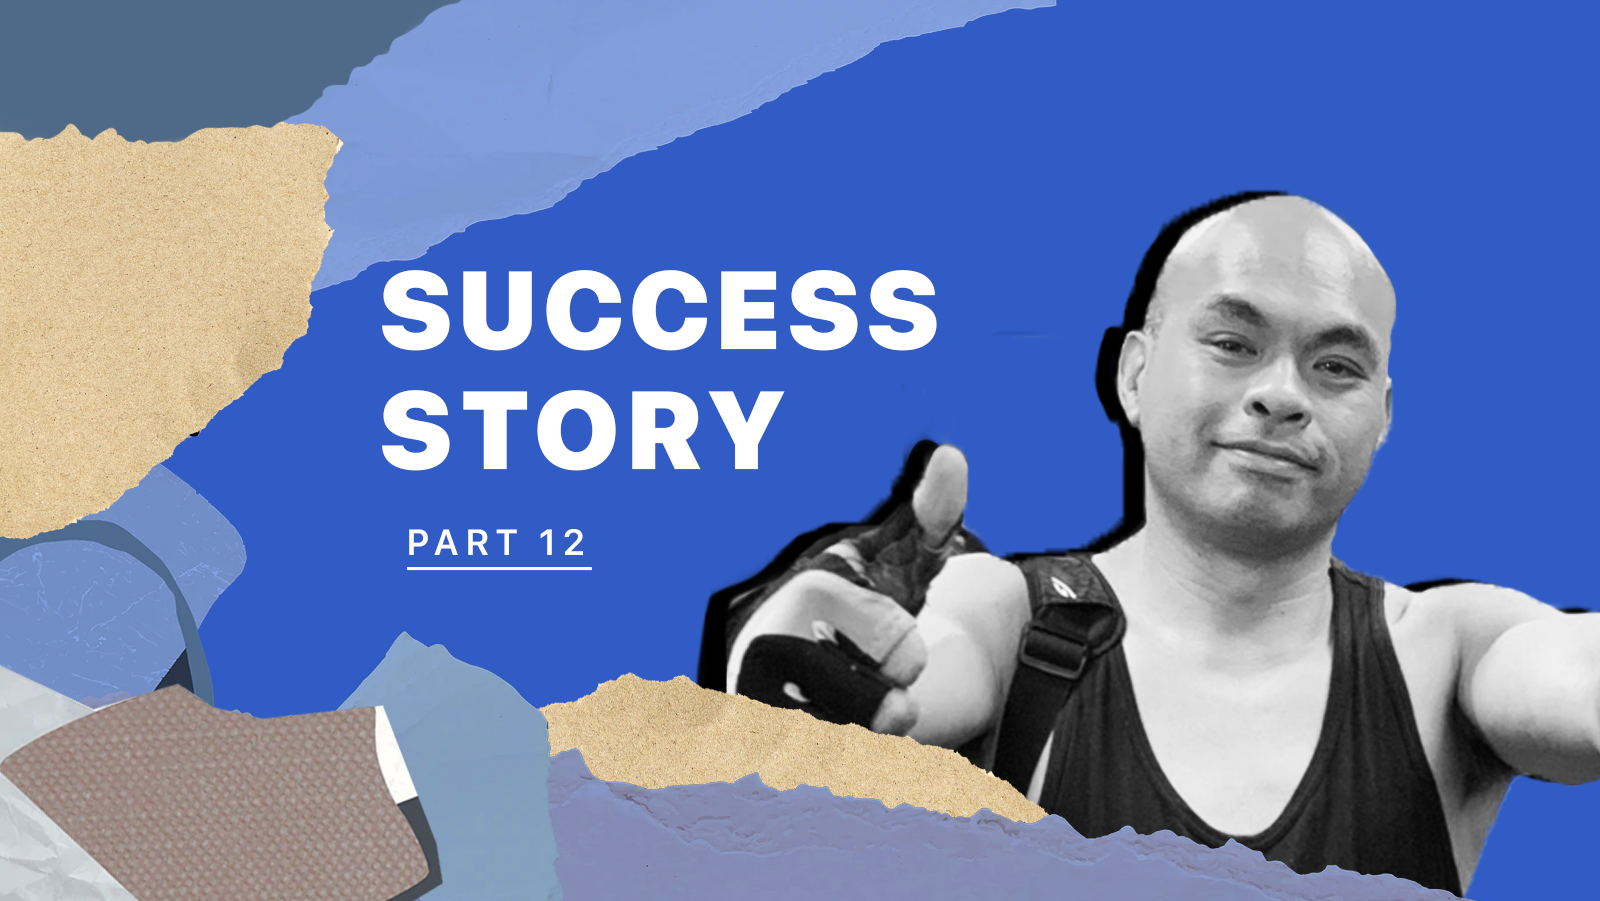 David Wang's Success Story